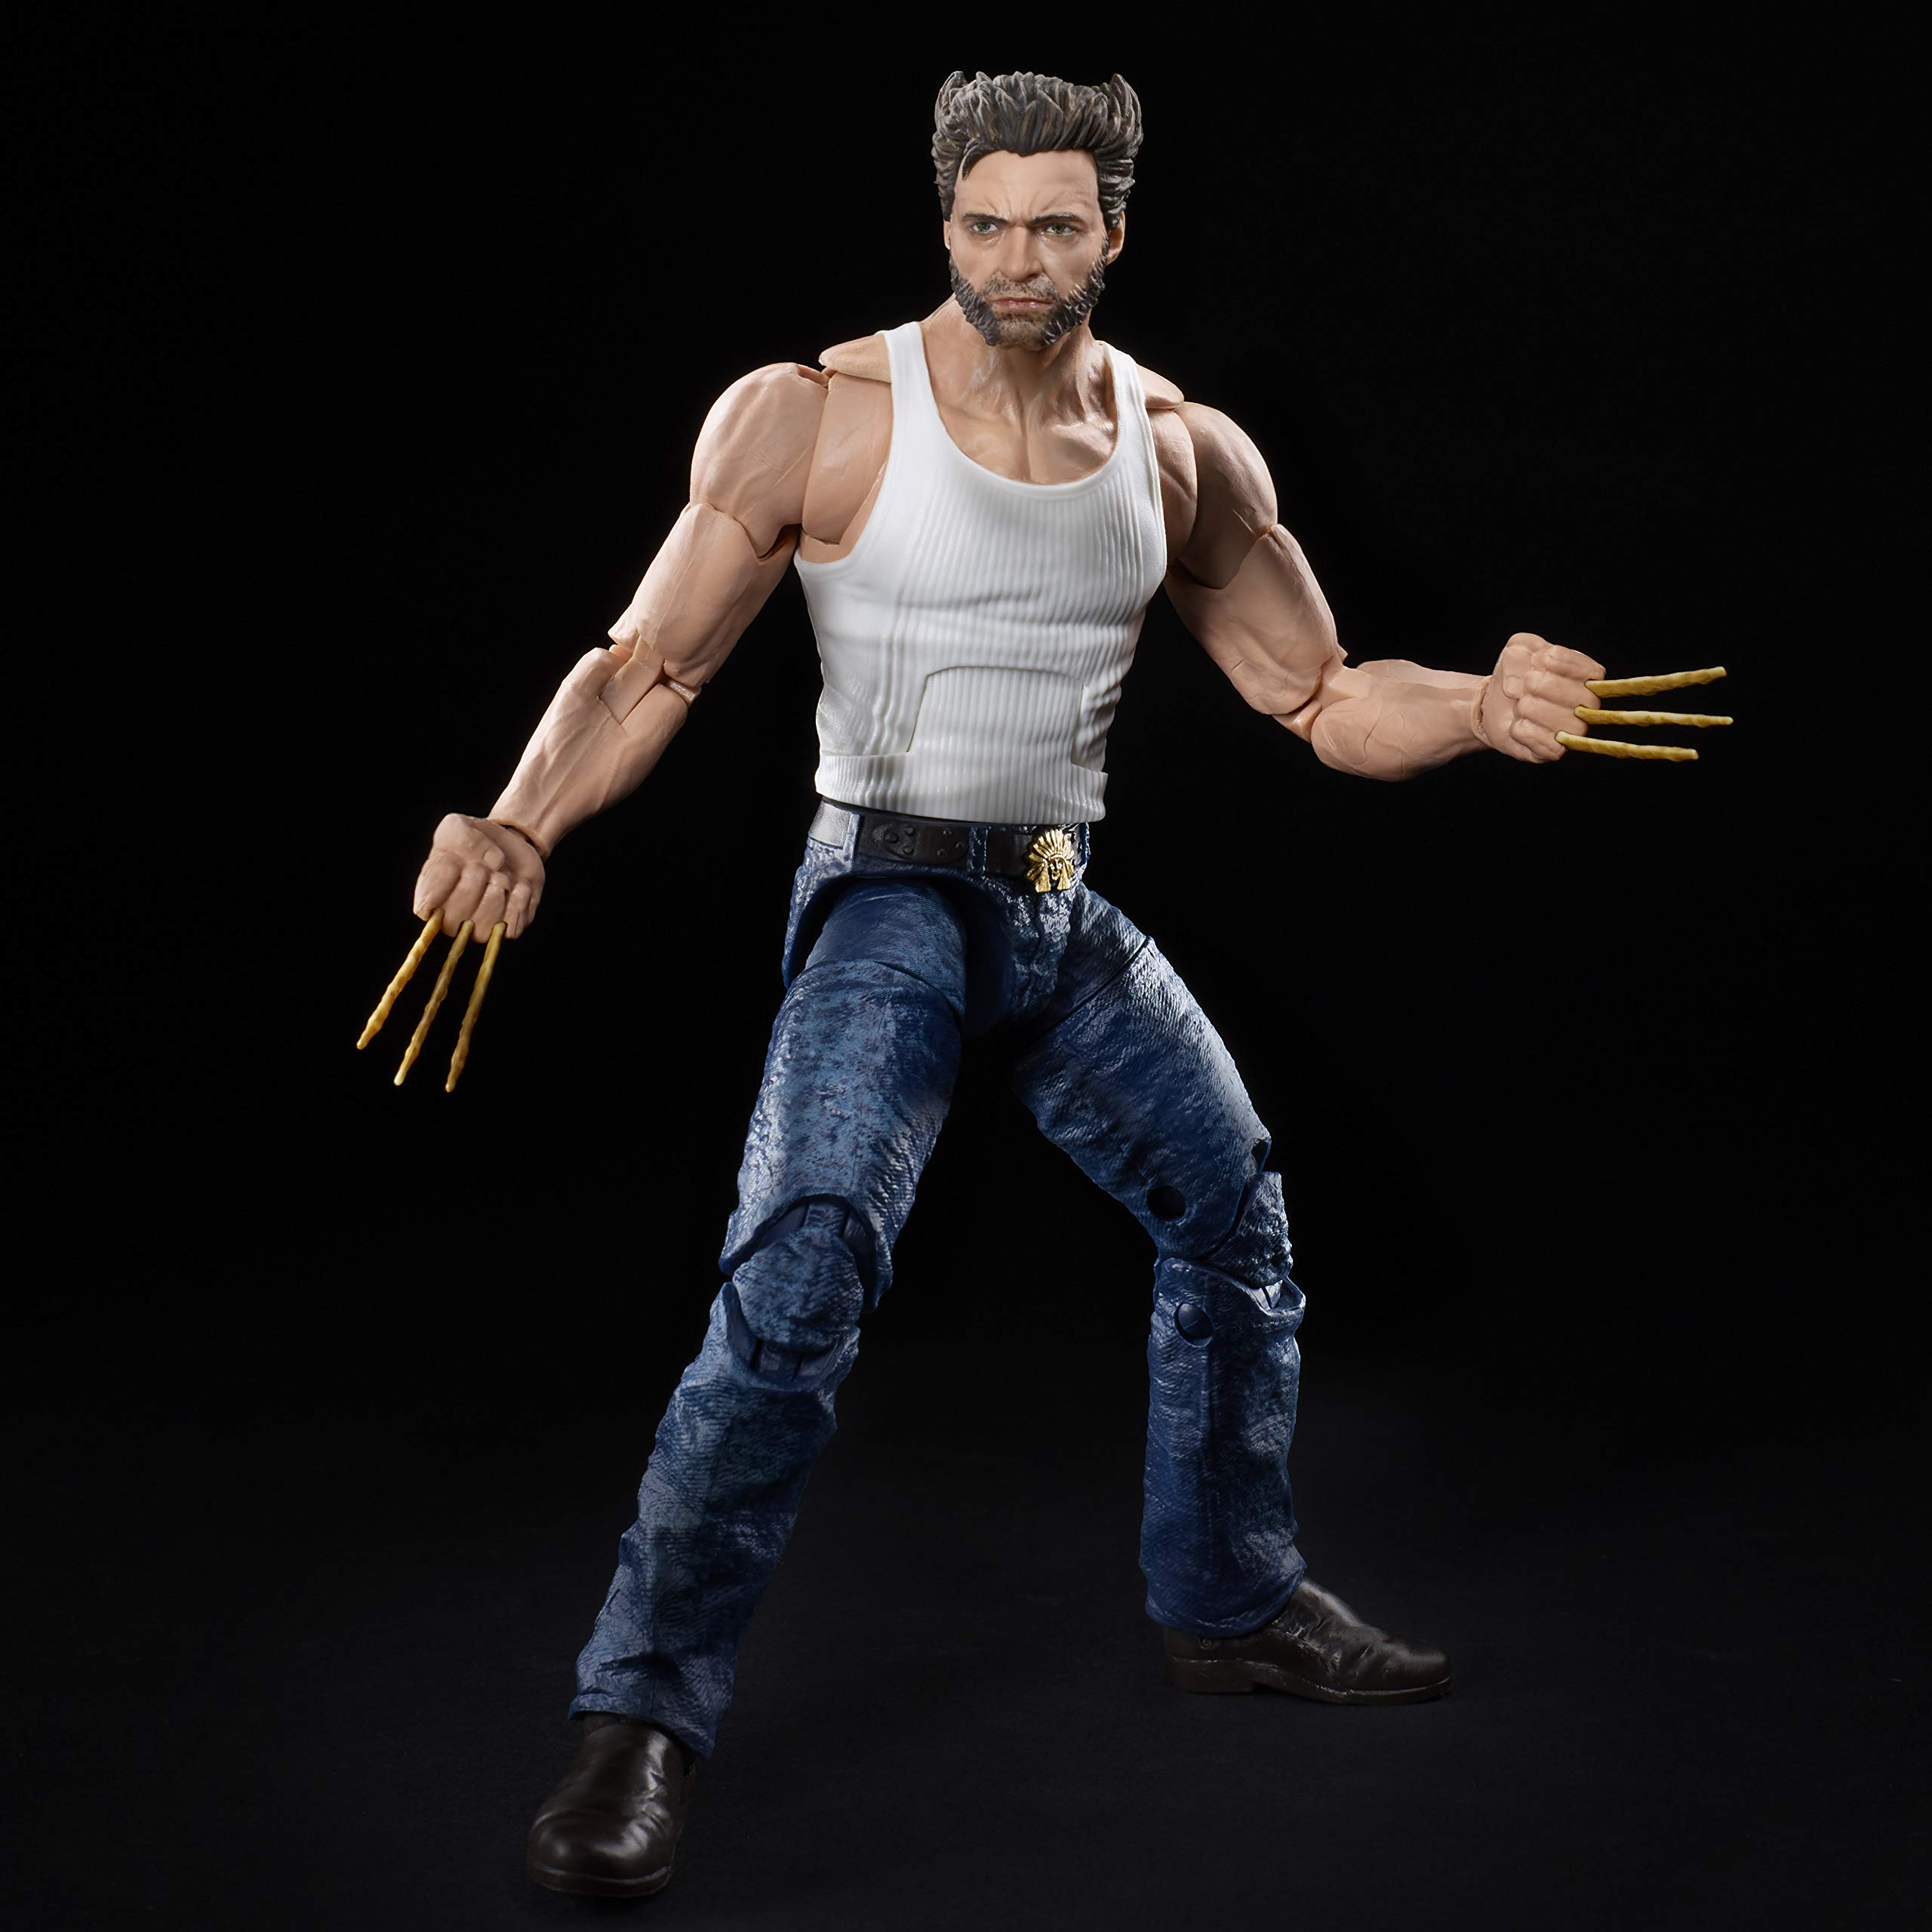 MARVEL Hasbro Legends Series Wolverine 6-inch Collectible Action Figure Toy, Ages 14 And Up